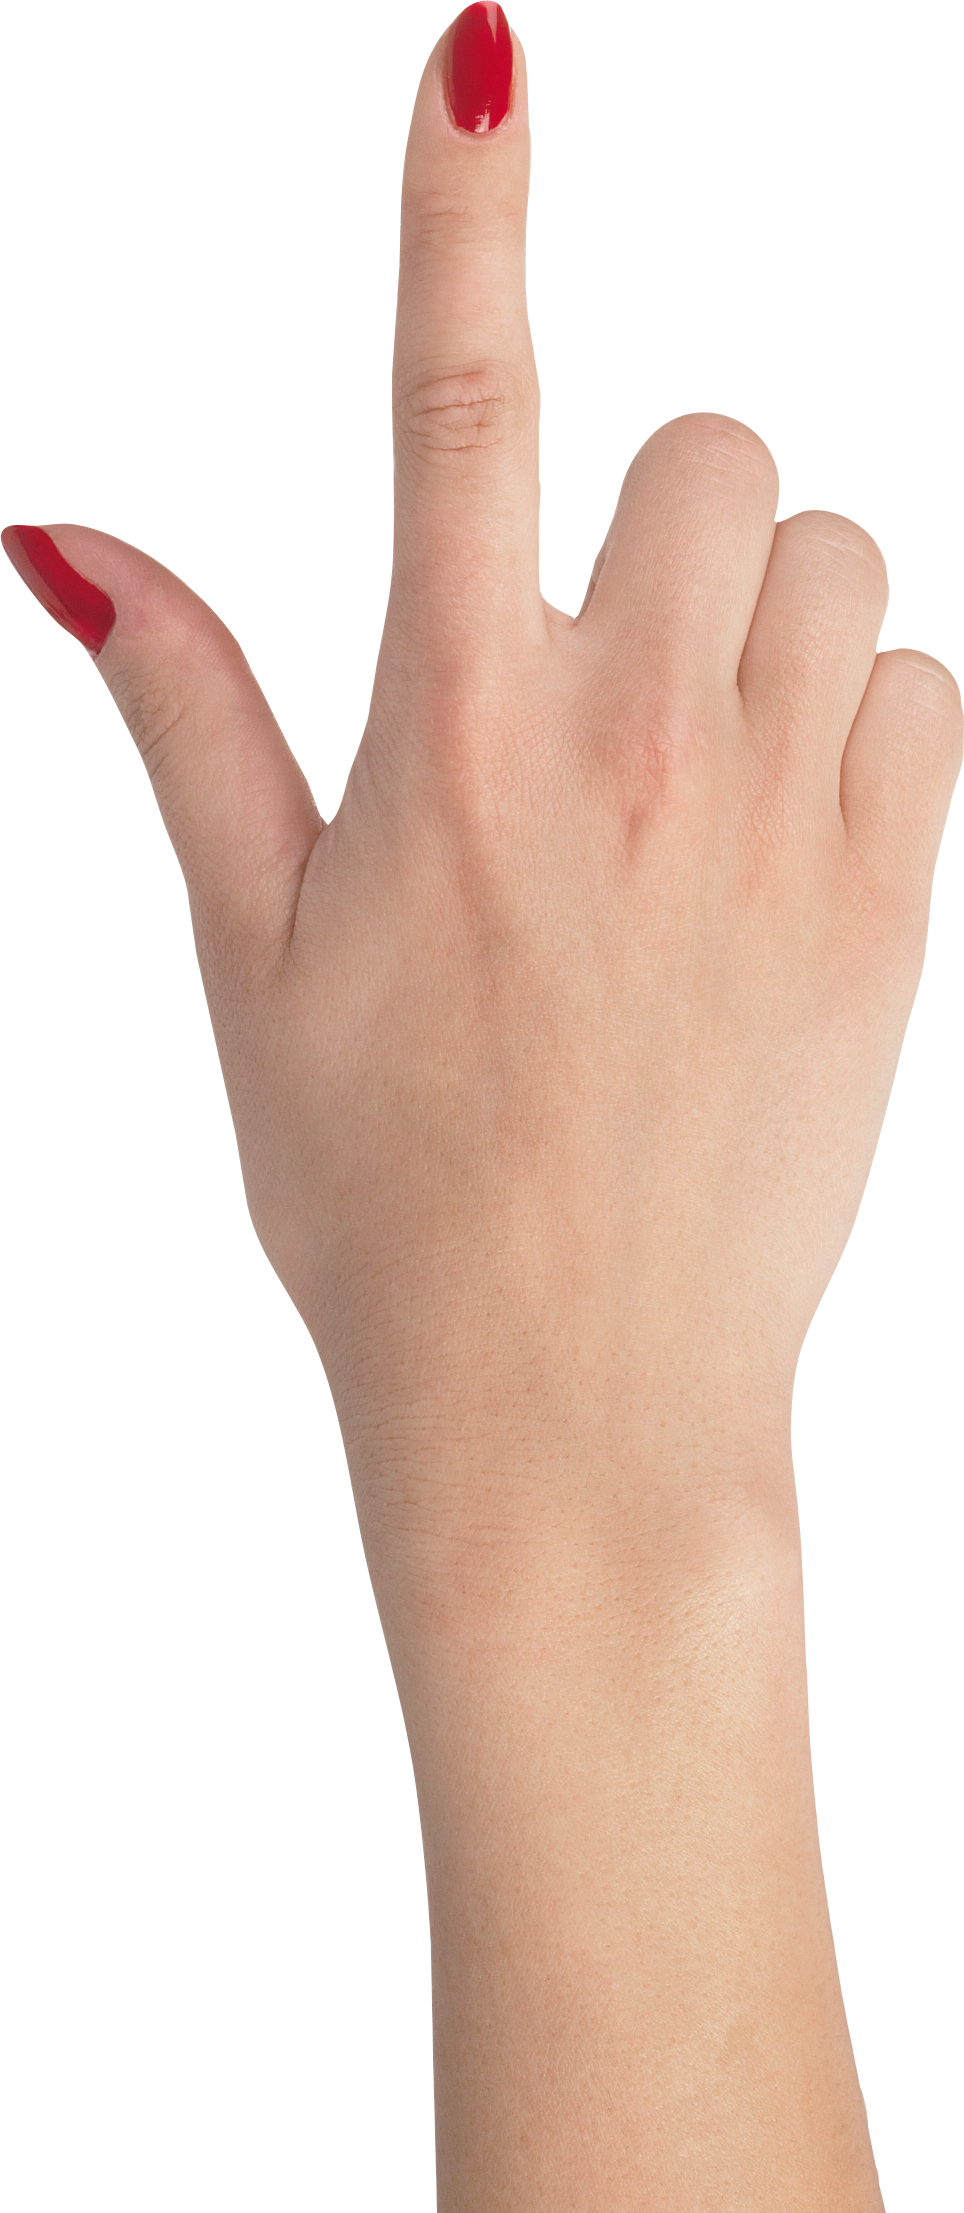 One finger hand with red nails, hands PNG, hand image free - Hands PNG